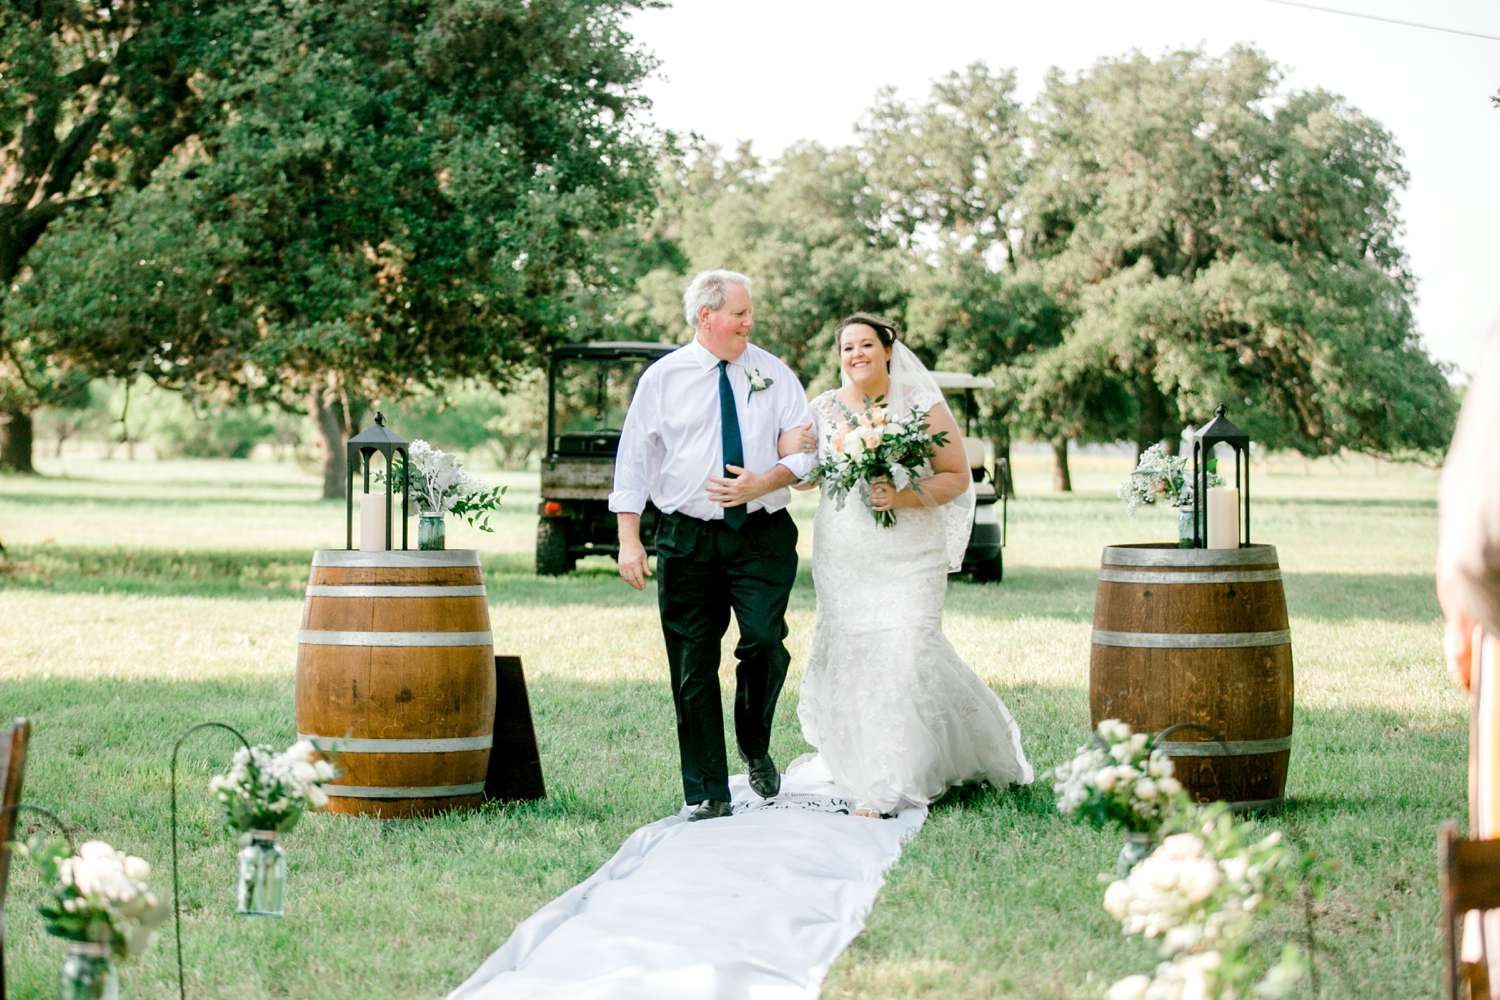 CHELSEA_AND_NICK_ADAMS_FREDRICKSBURG_WEDDING_ALLEEJ0046.jpg